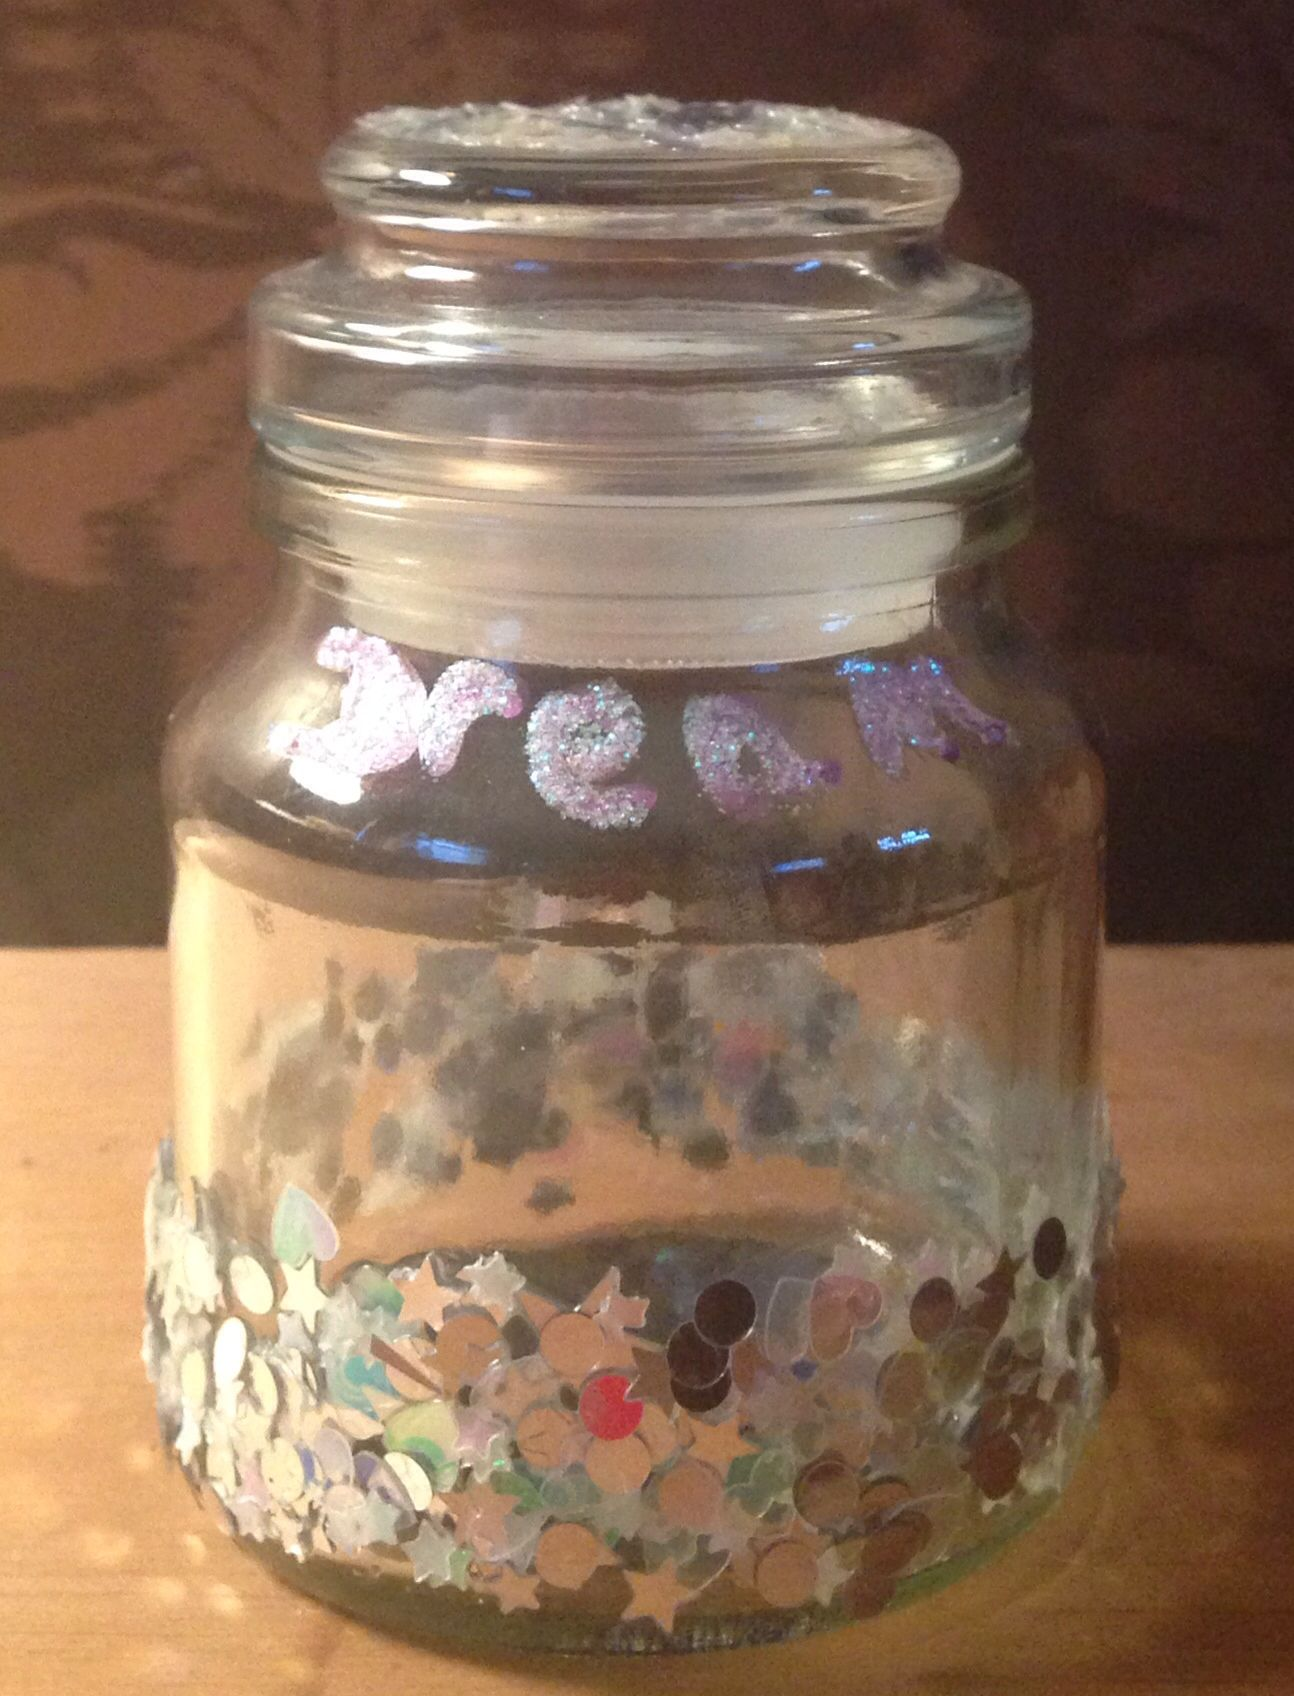 Dream Jar, which can double up as a candle holder